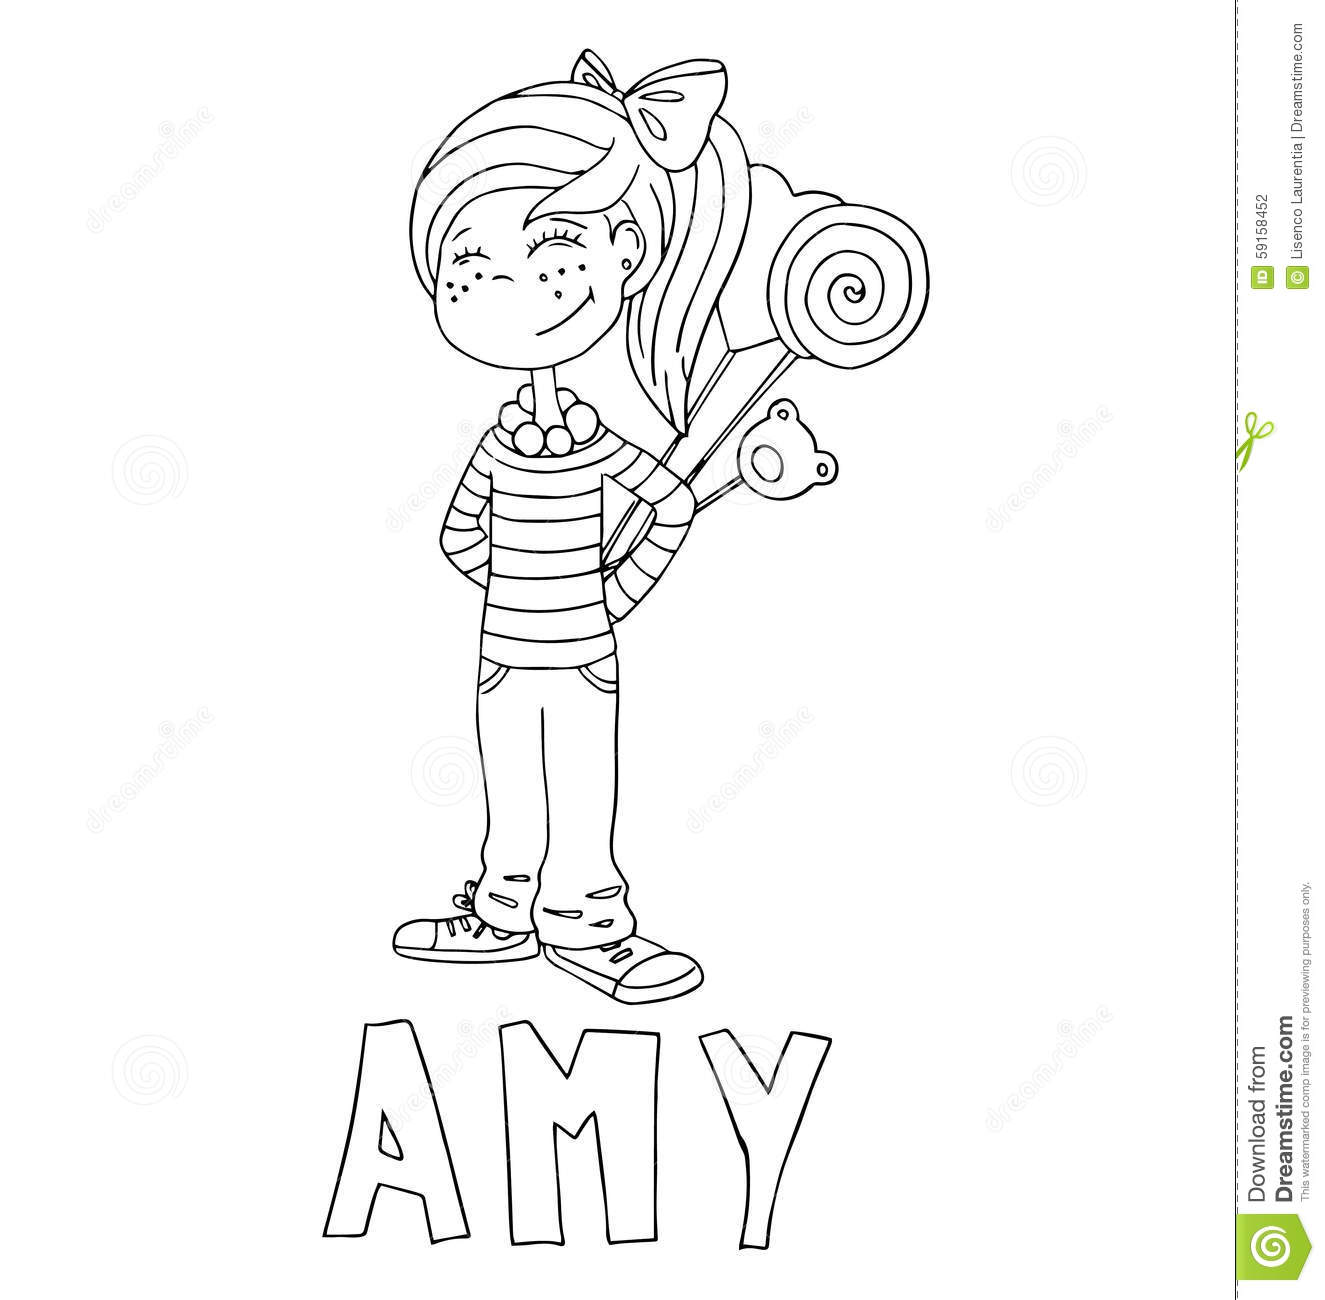 The Simple Outline Drawing For Coloring With The Image Of